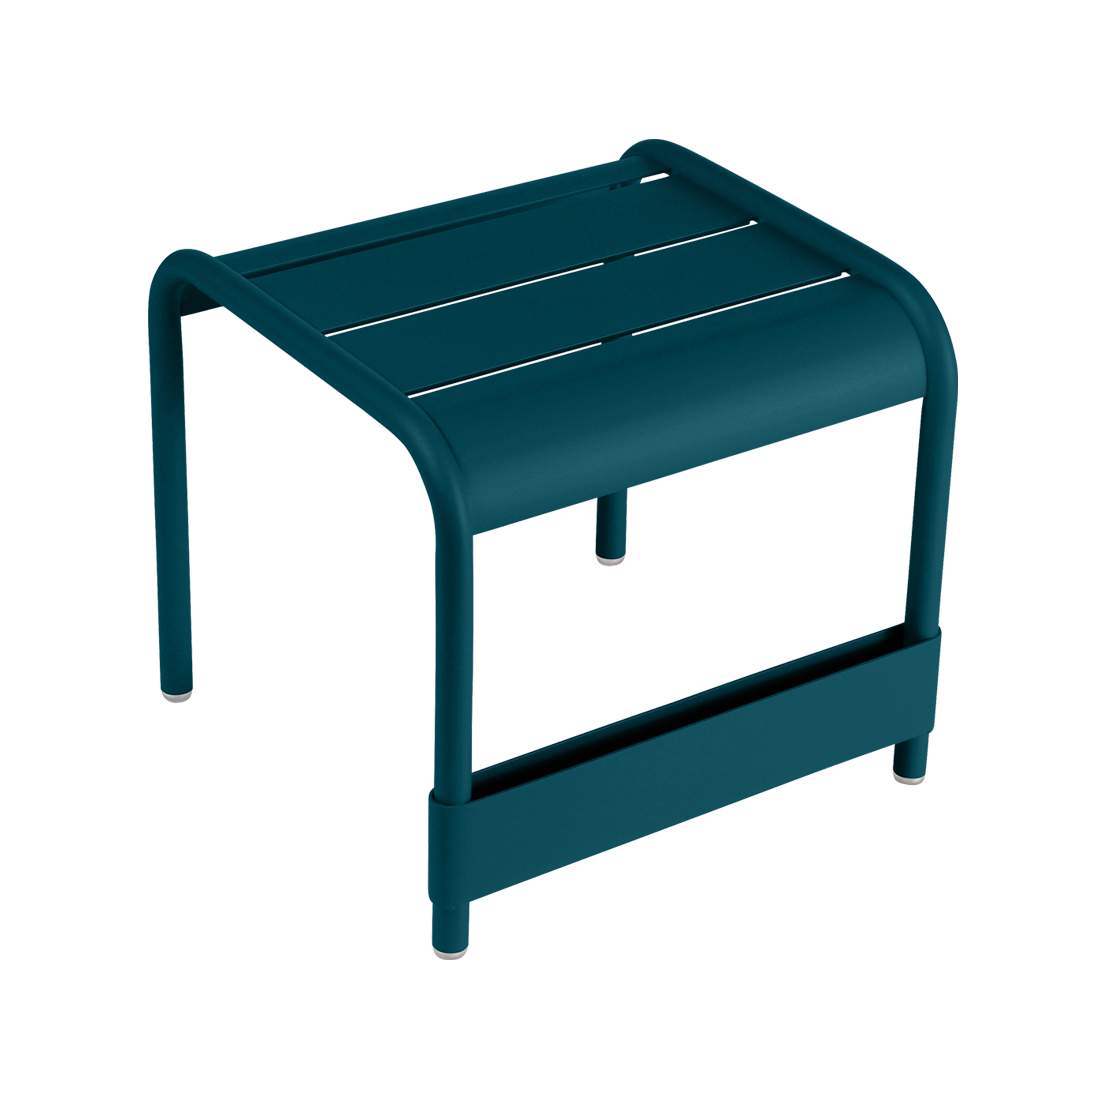 Petite table basse / Repose-pied luxembourg bleu acapulco